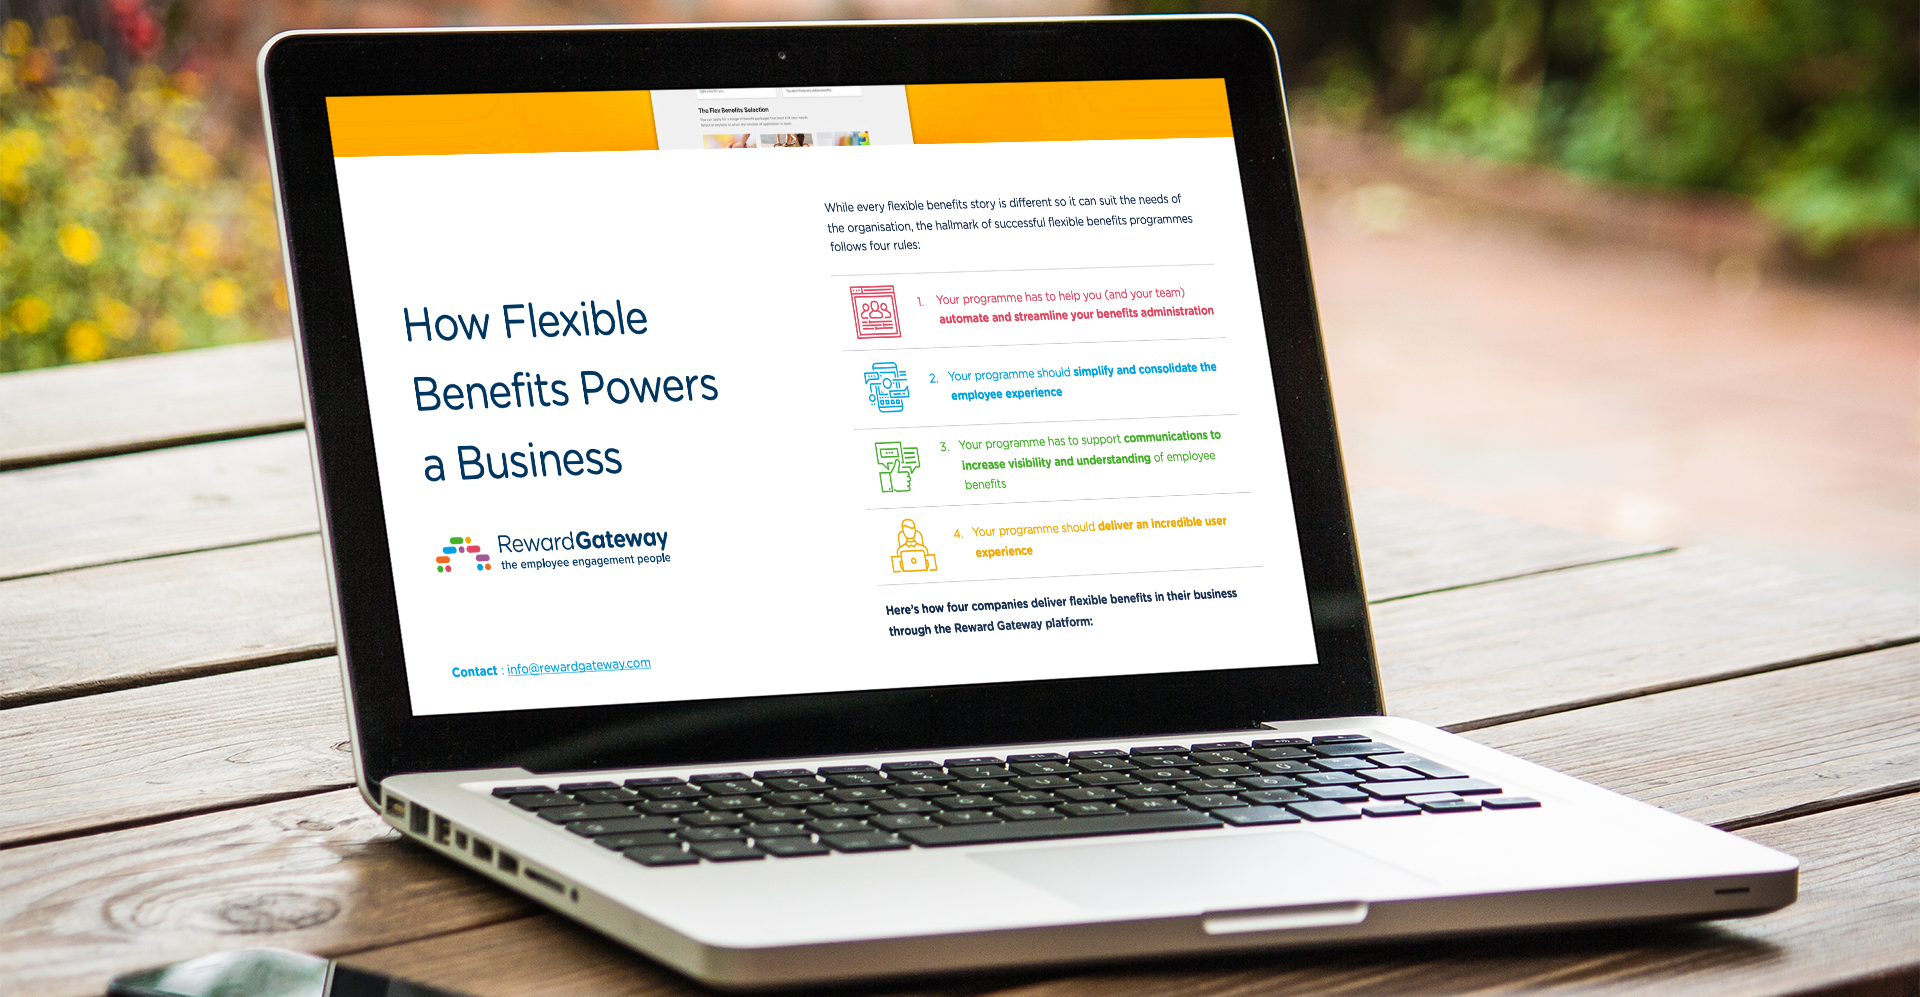 How Flexible Benefits Powers a Business